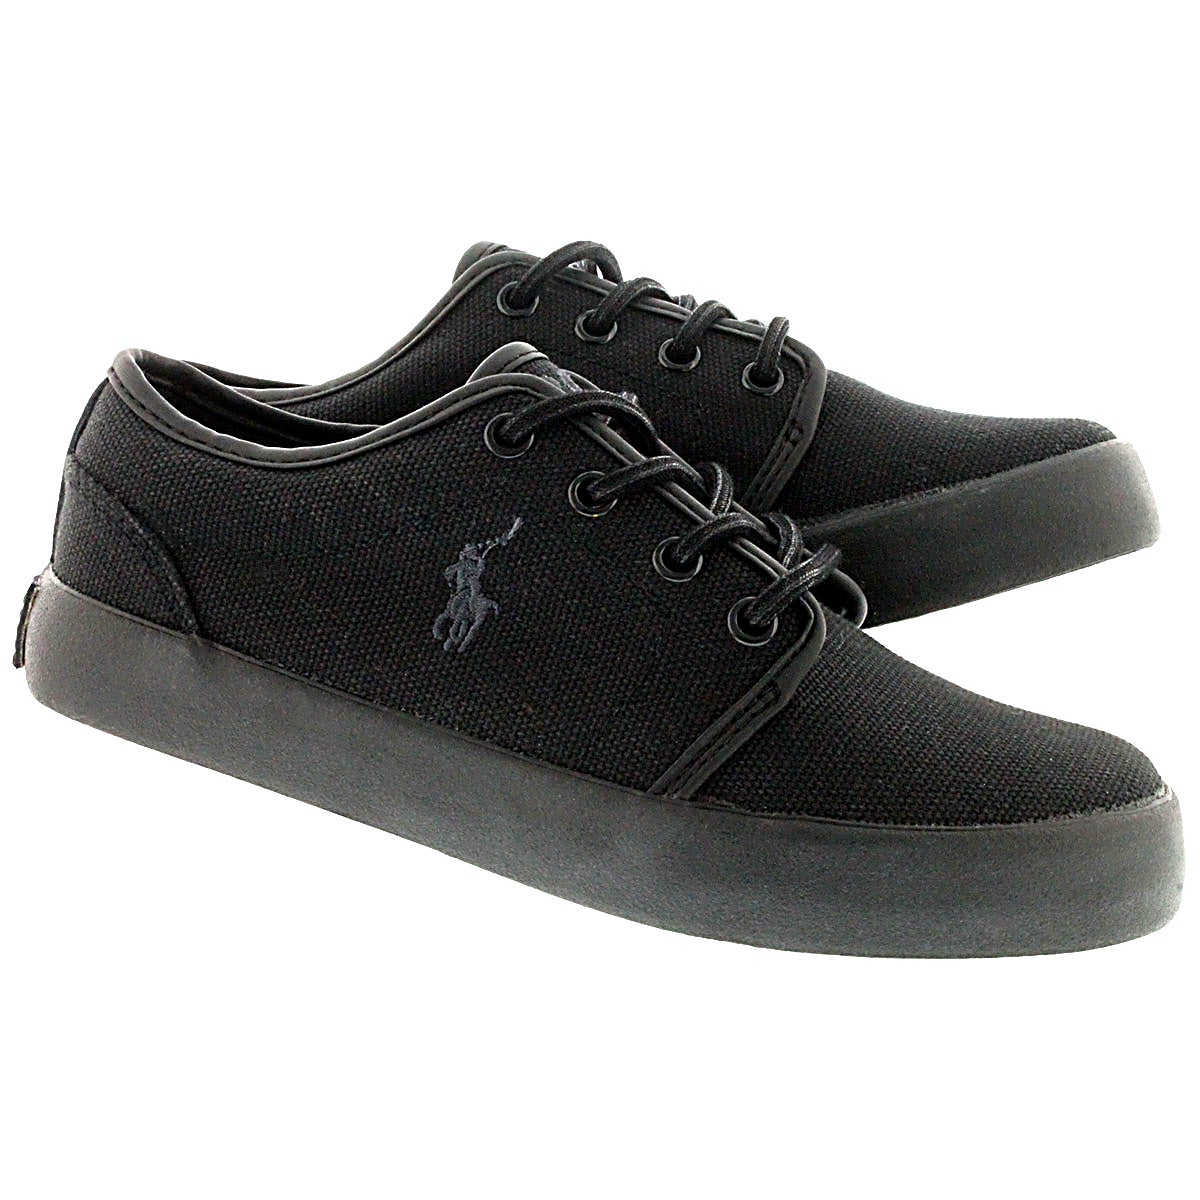 Bys Ethan Low black lace up sneaker